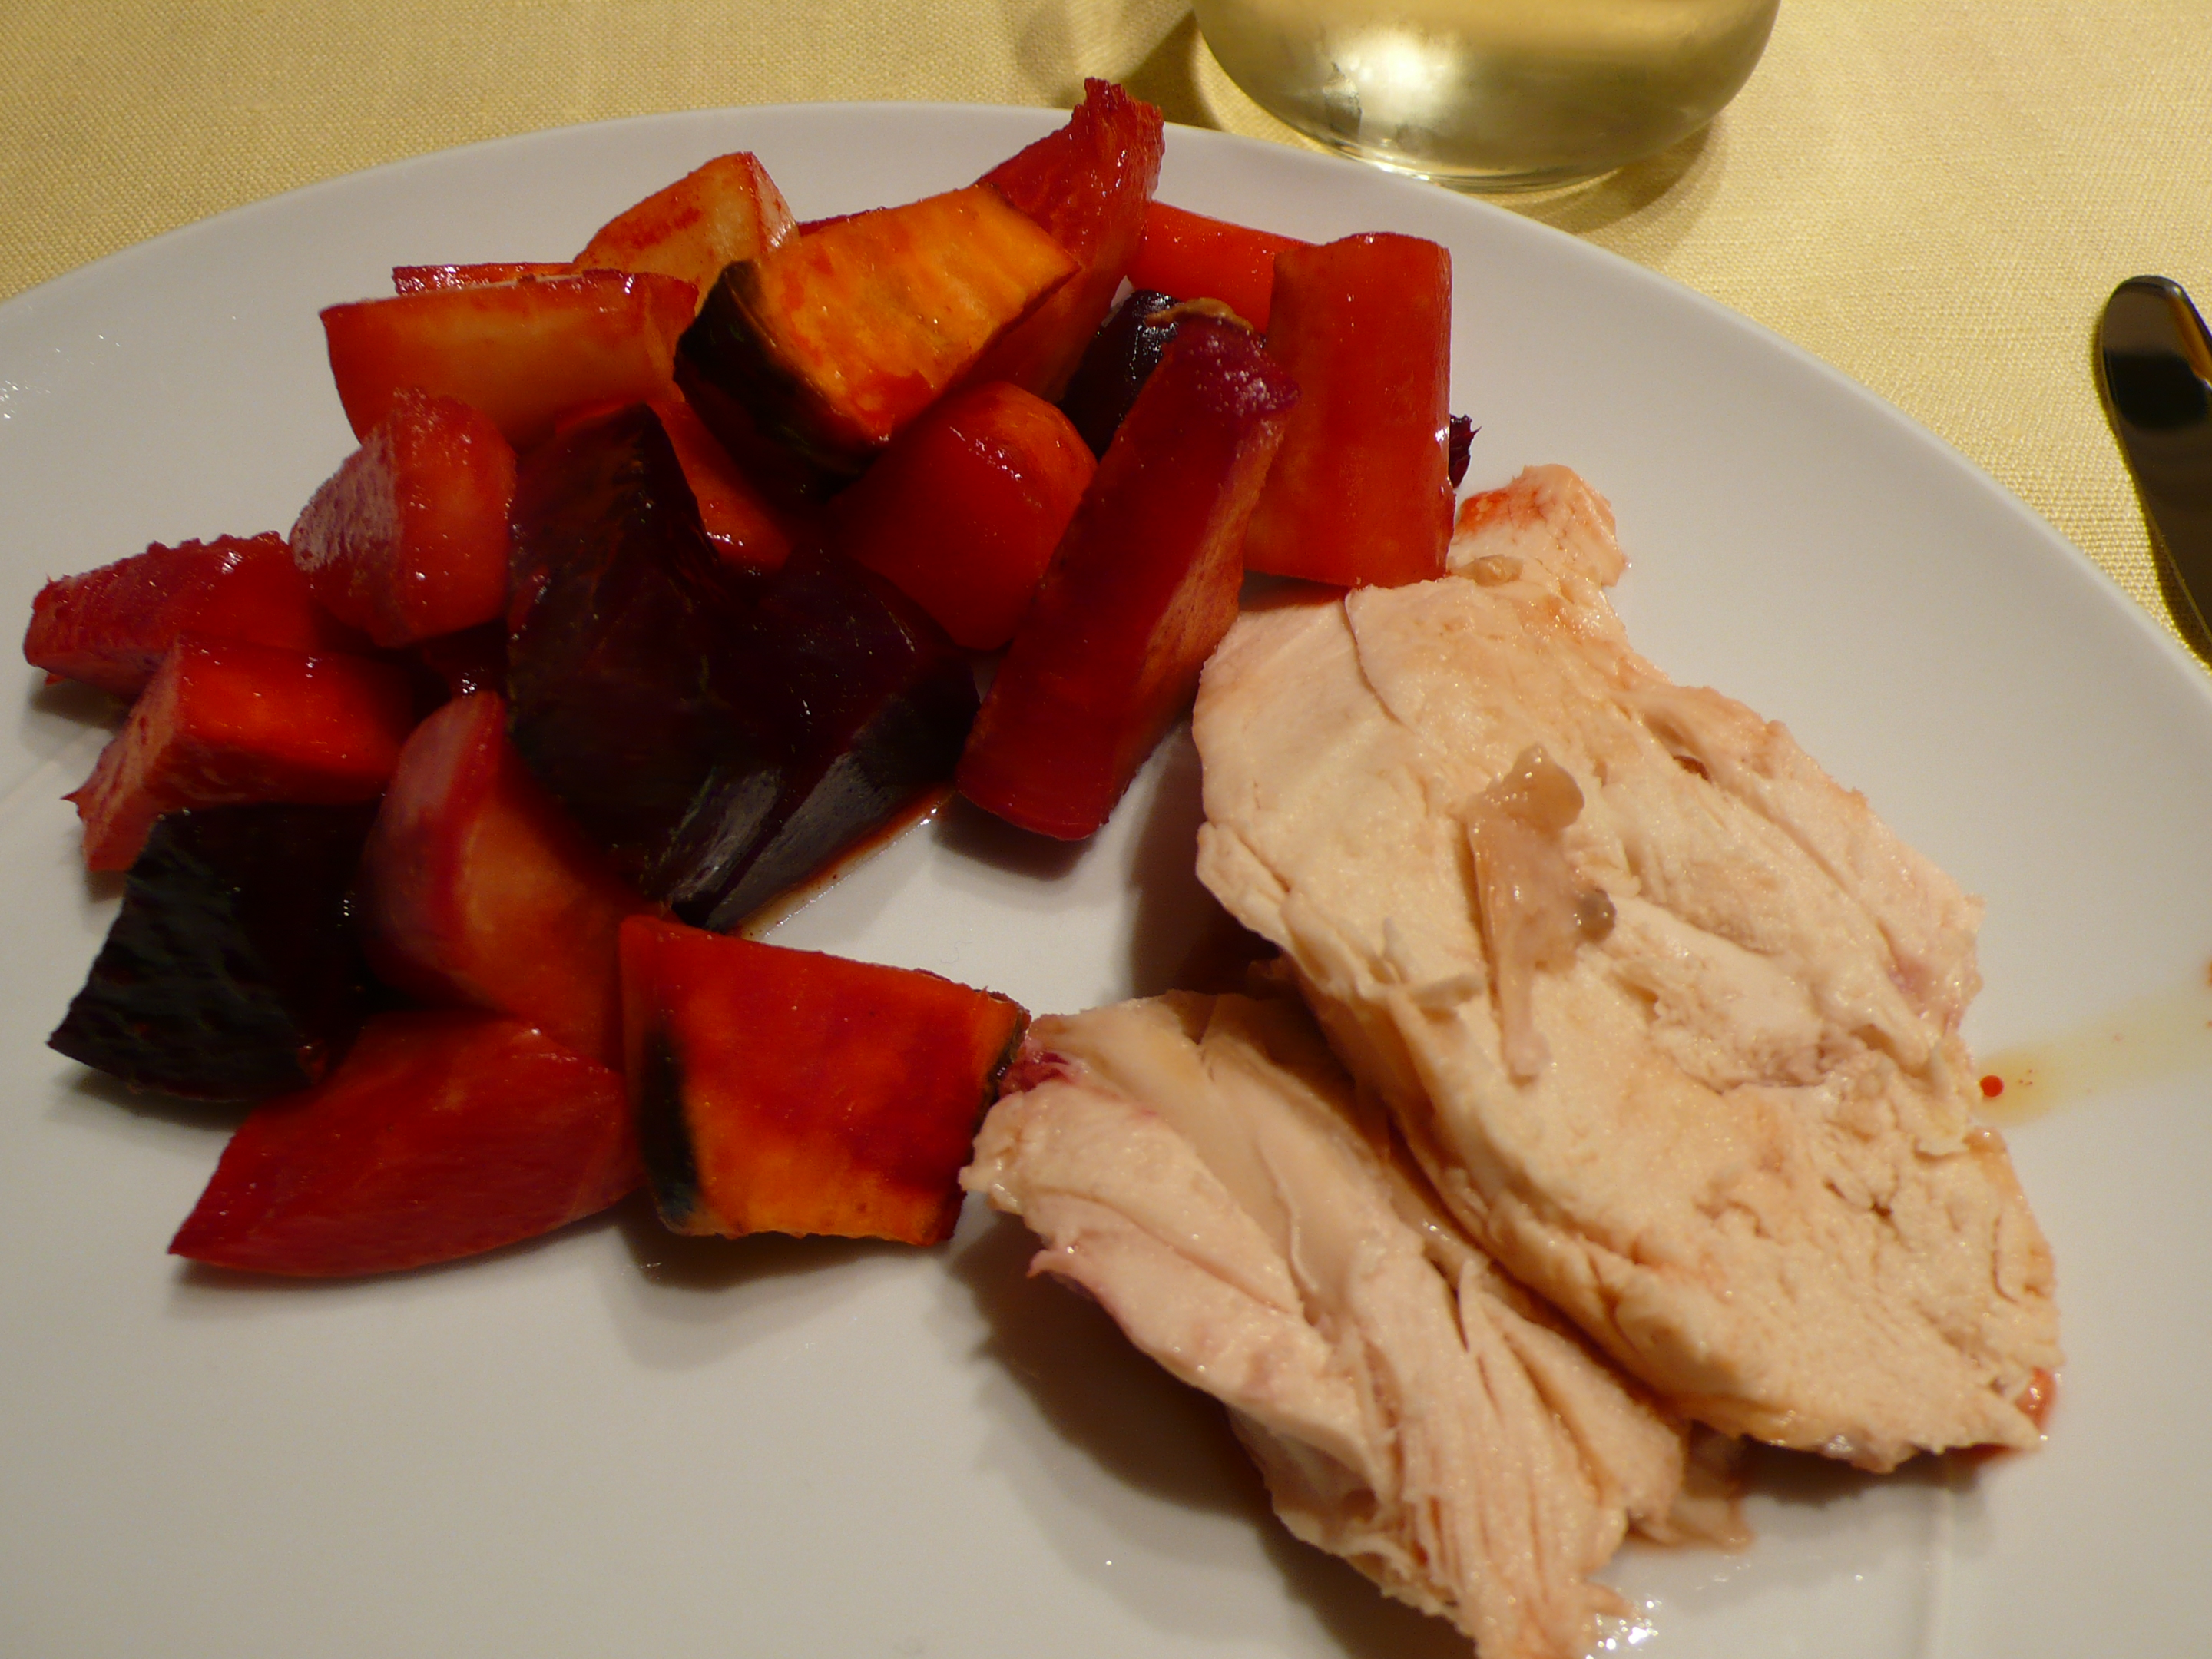 baked chicken with roasted veggies